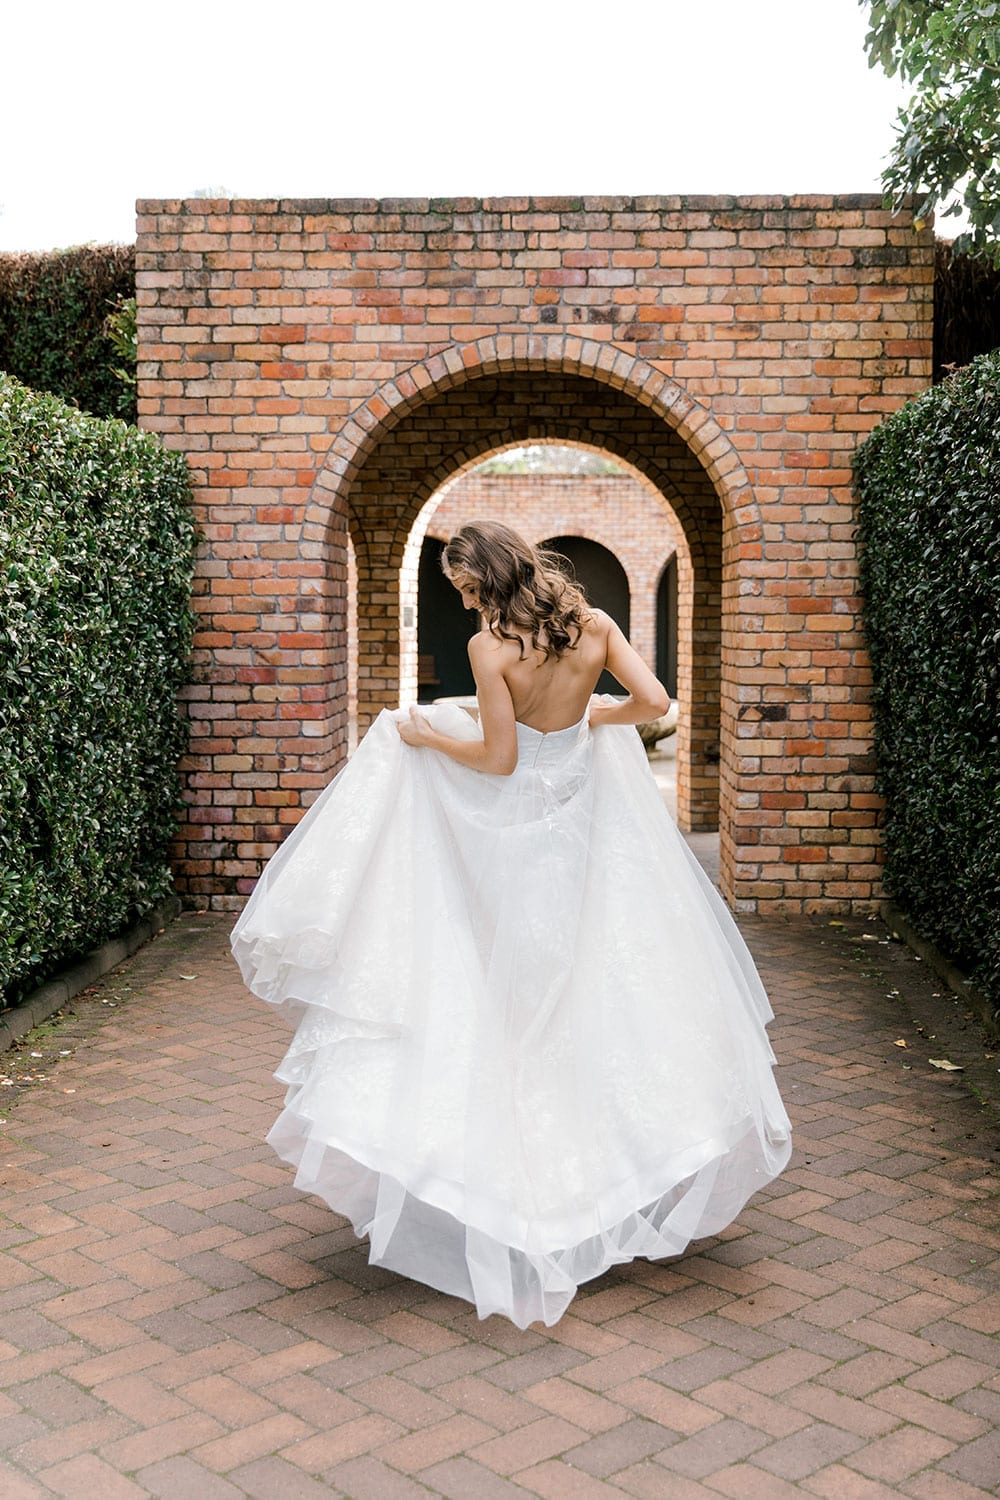 Model wearing Vinka Design Jasmine Wedding Dress, a Strapless Classic Wedding Gown facing away in front of brick arches in a garden